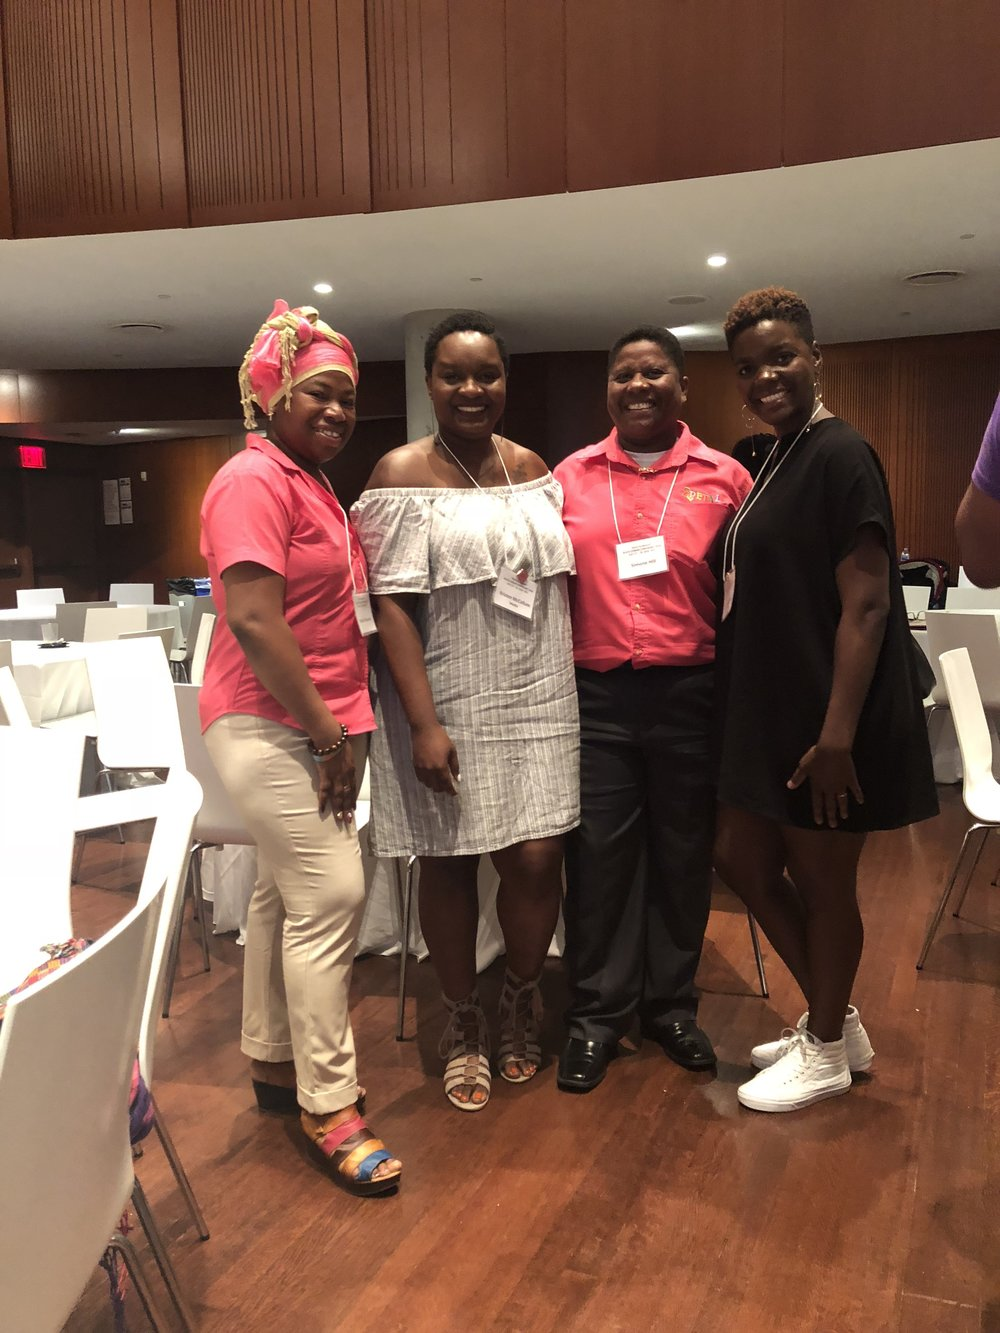 We were so excited to meet Simone Hill & Ifáṣínà Efunyemi all the way from Belize representing  Promoting Empowerment Through Awareness For Les/Bi Women - PETAL